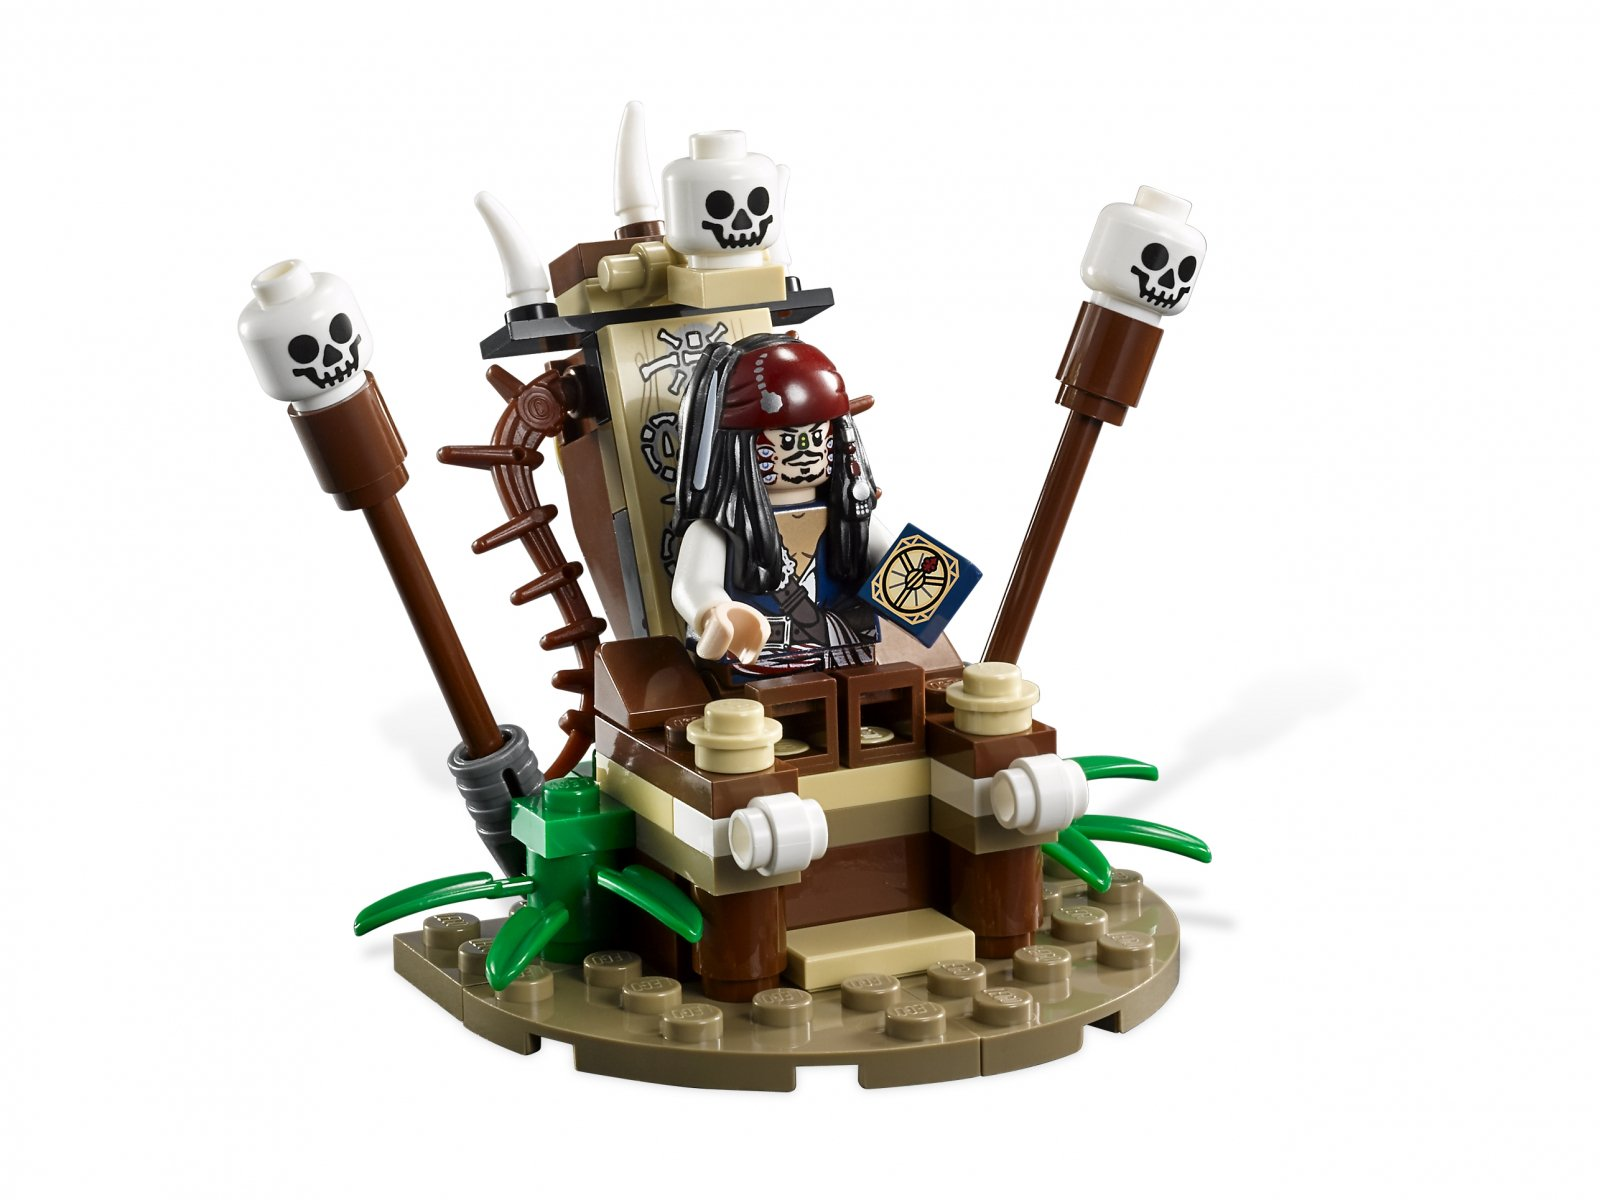 LEGO 4182 Pirates of the Caribbean™ The Cannibal Escape